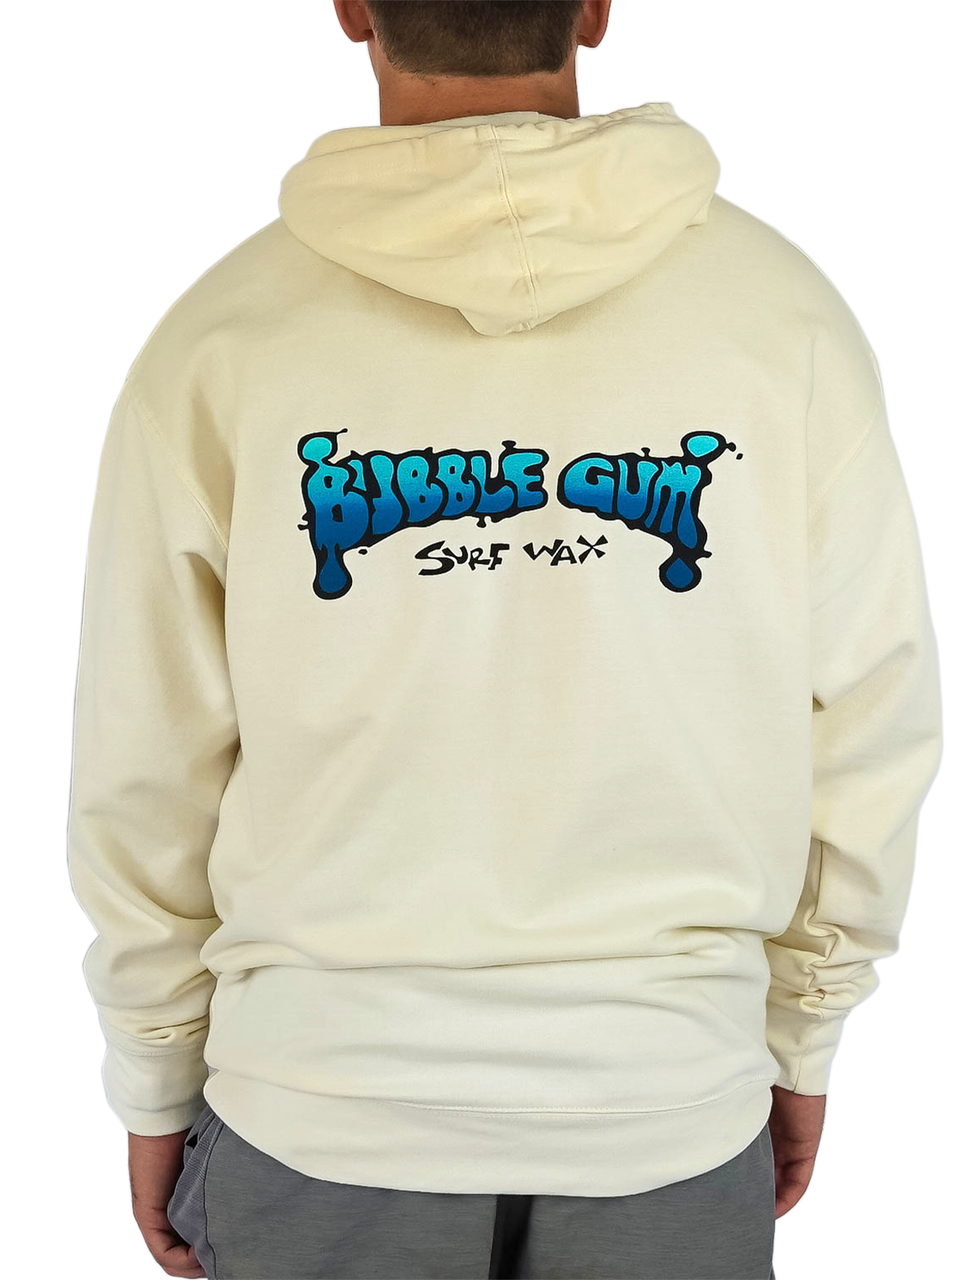 Blue Gradient Sweatshirt